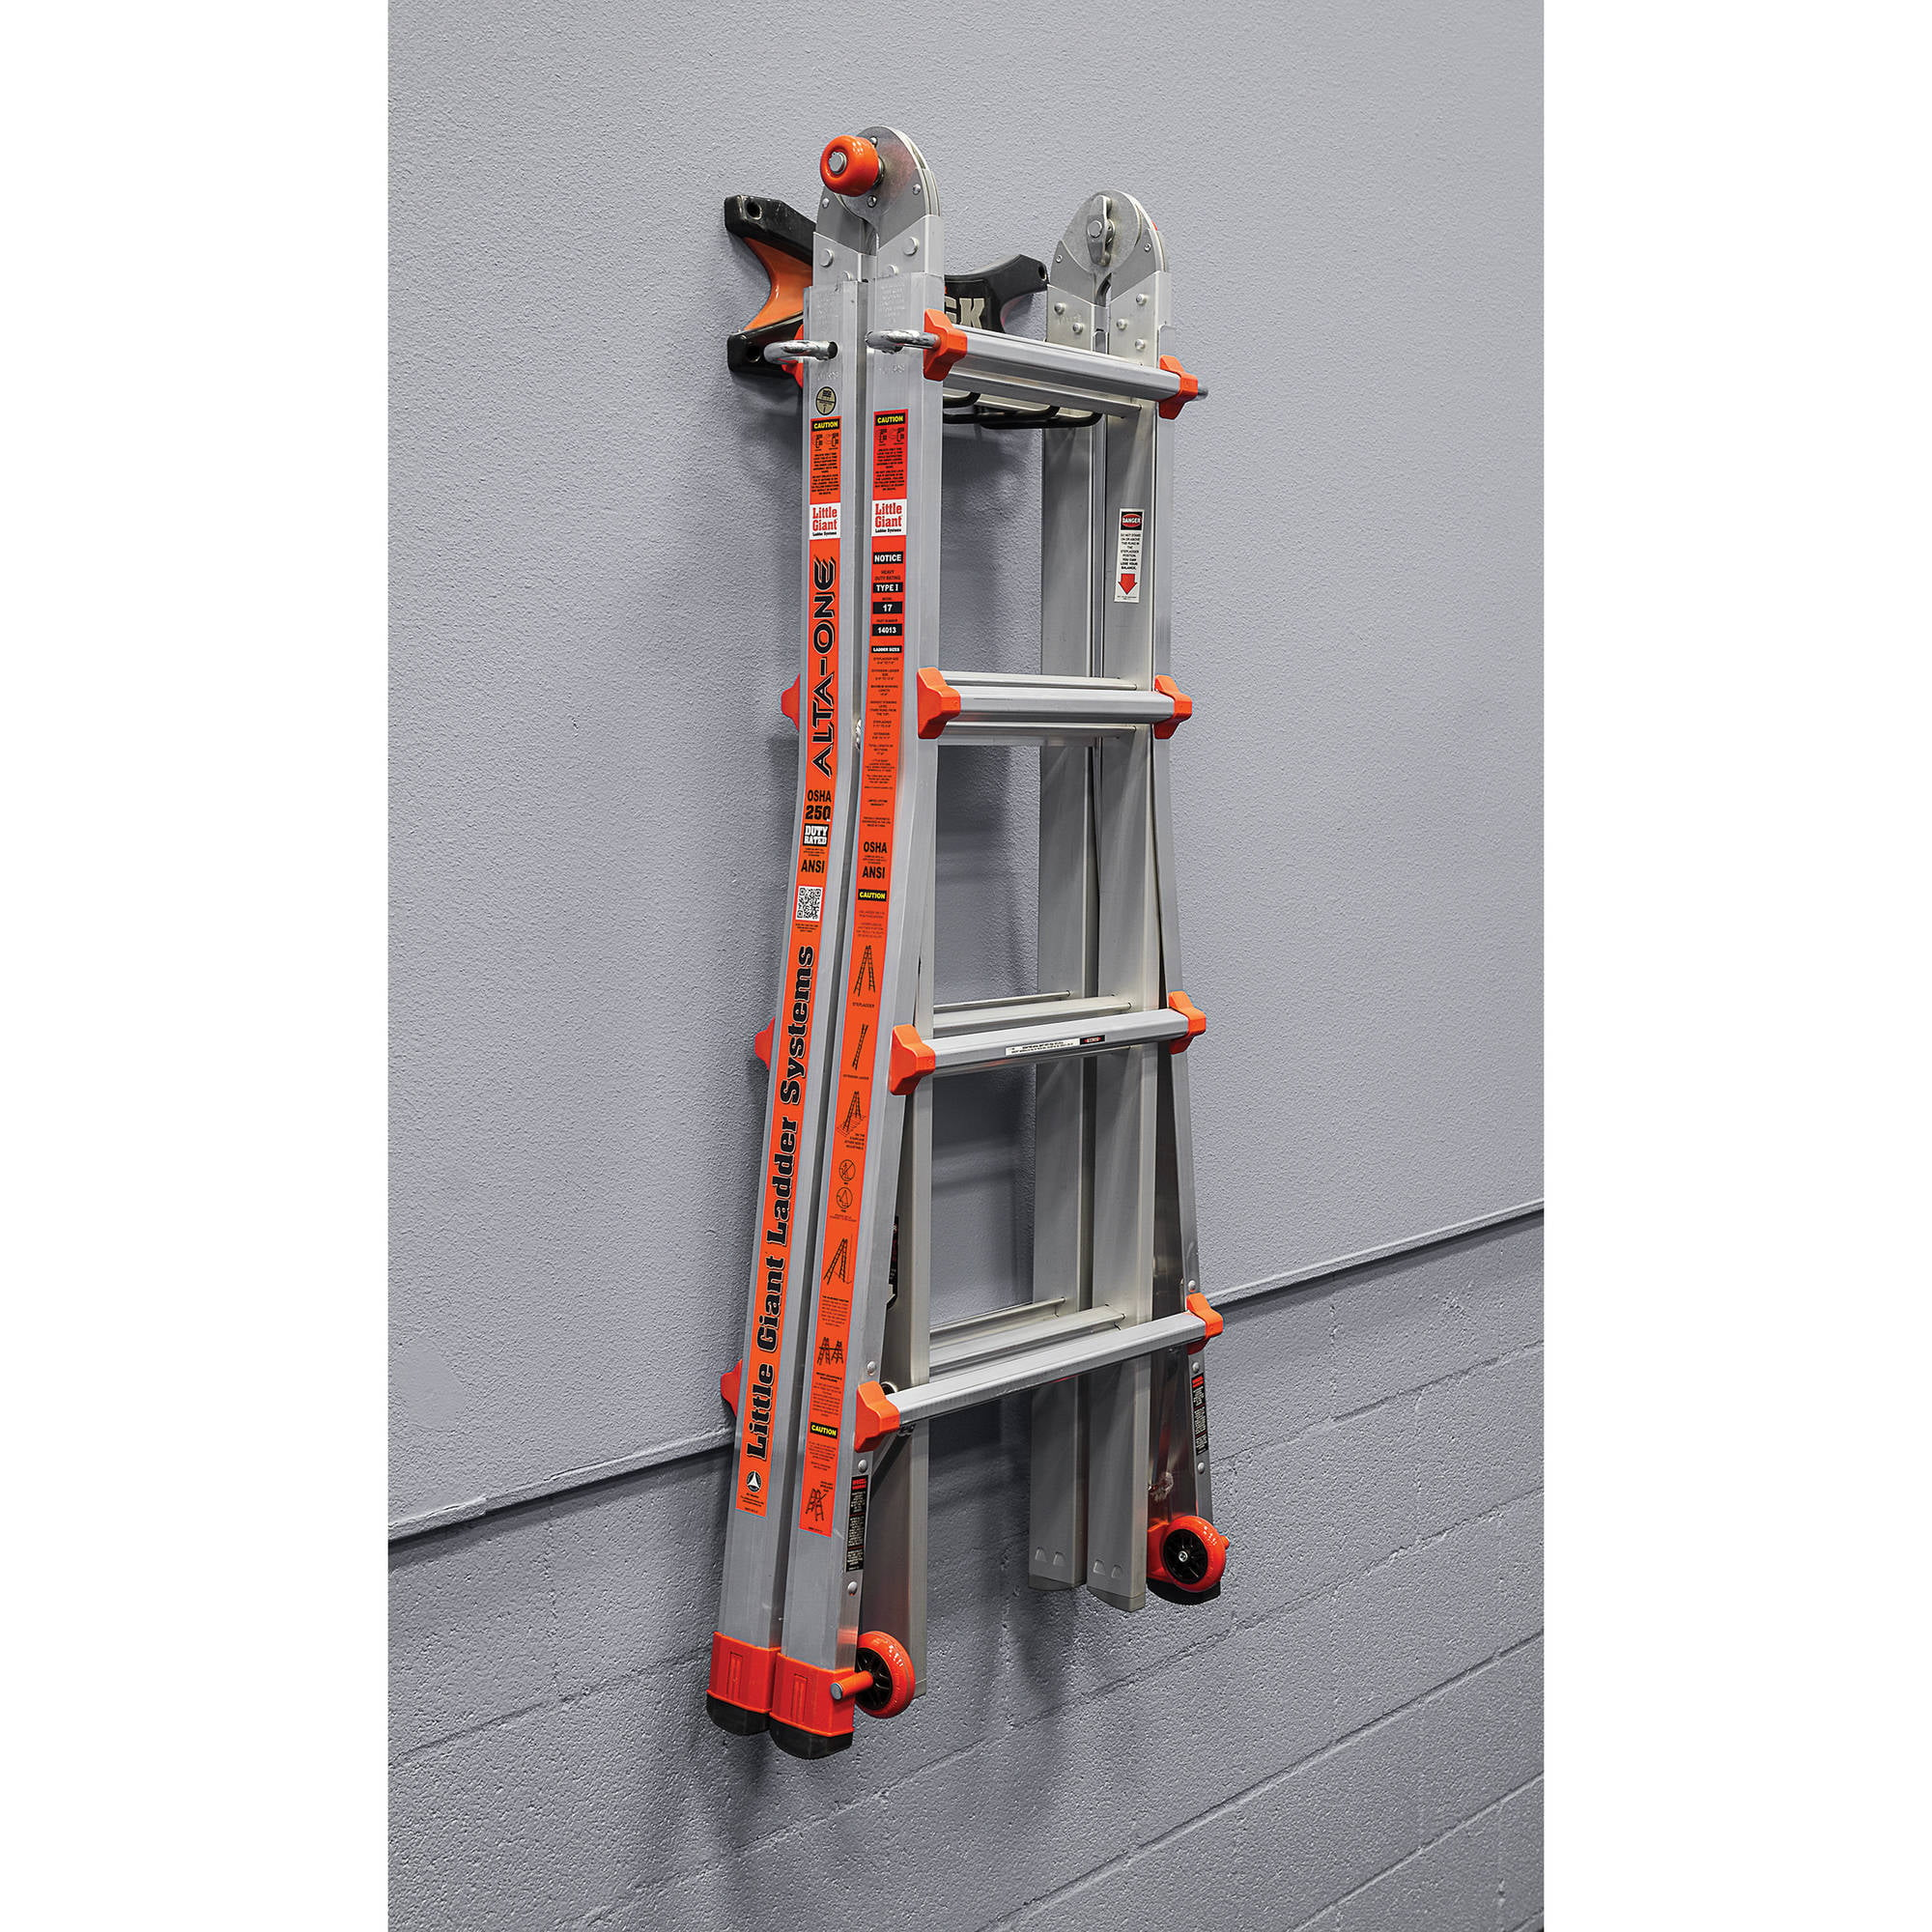 Where Are Little Giant Ladders Manufactured Best Image